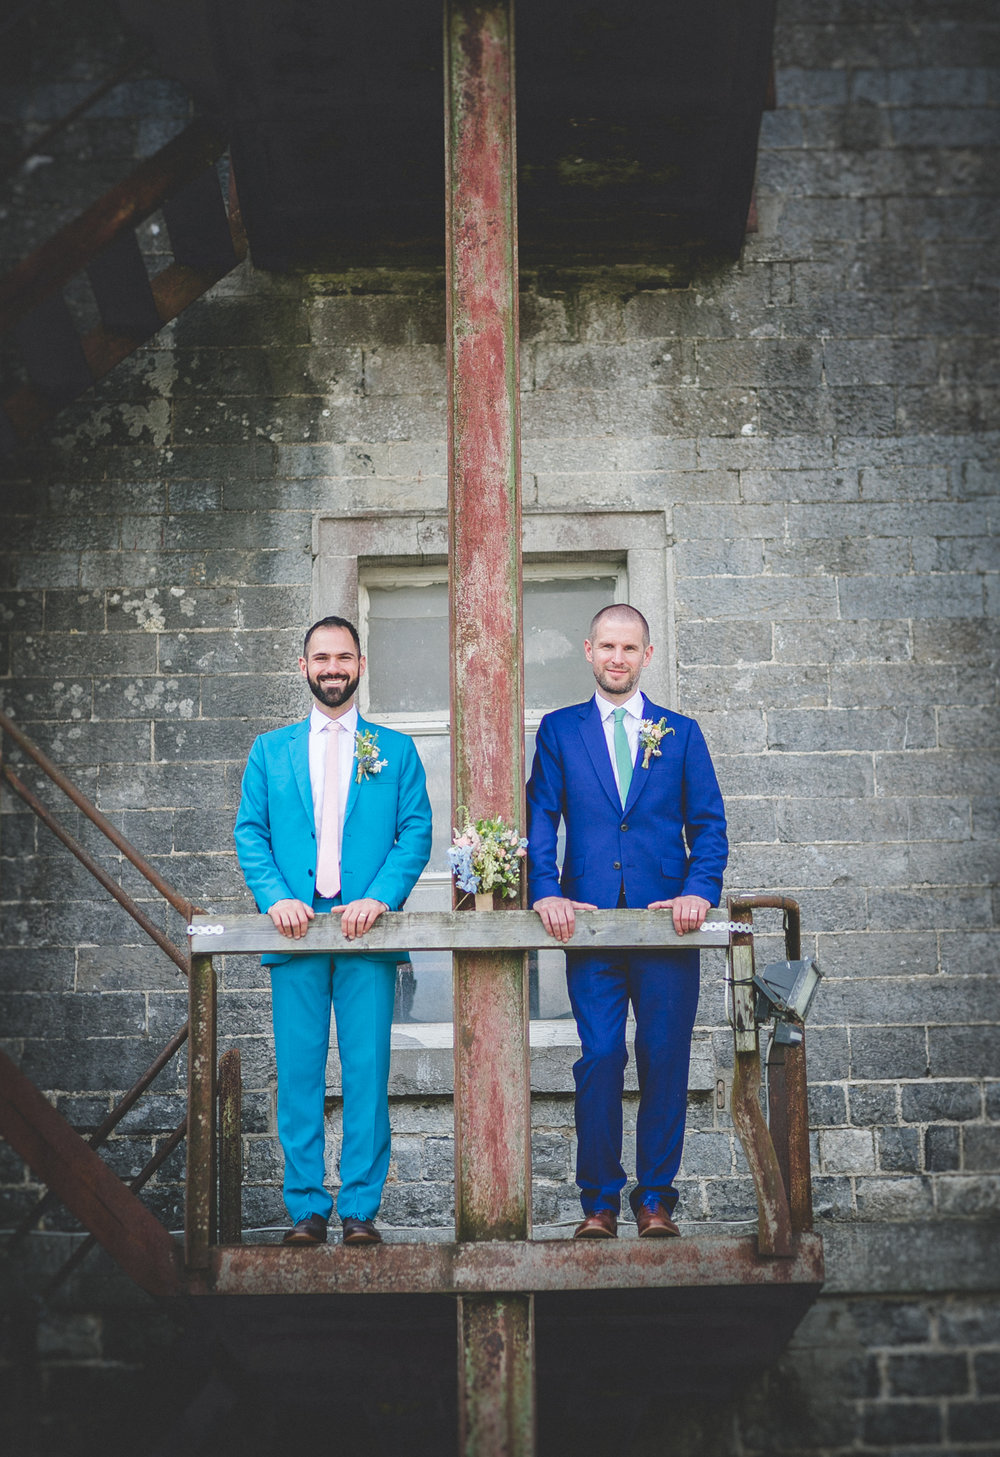 Gay weddings Ireland Millhouse-118.jpg